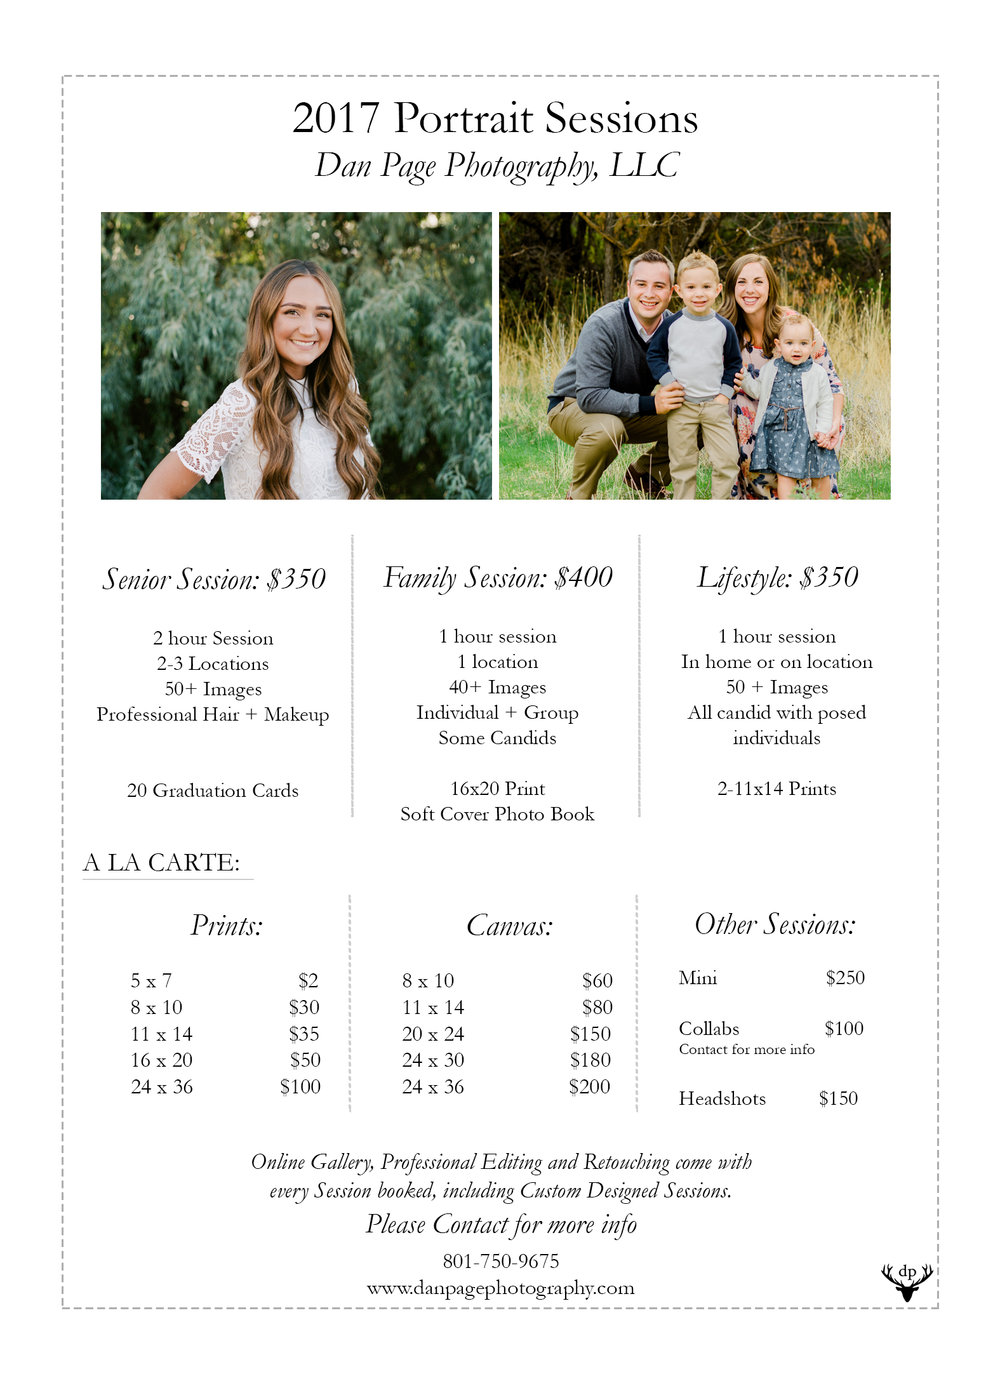 Davis County Photographer, Dan Page Photography, Price Guide